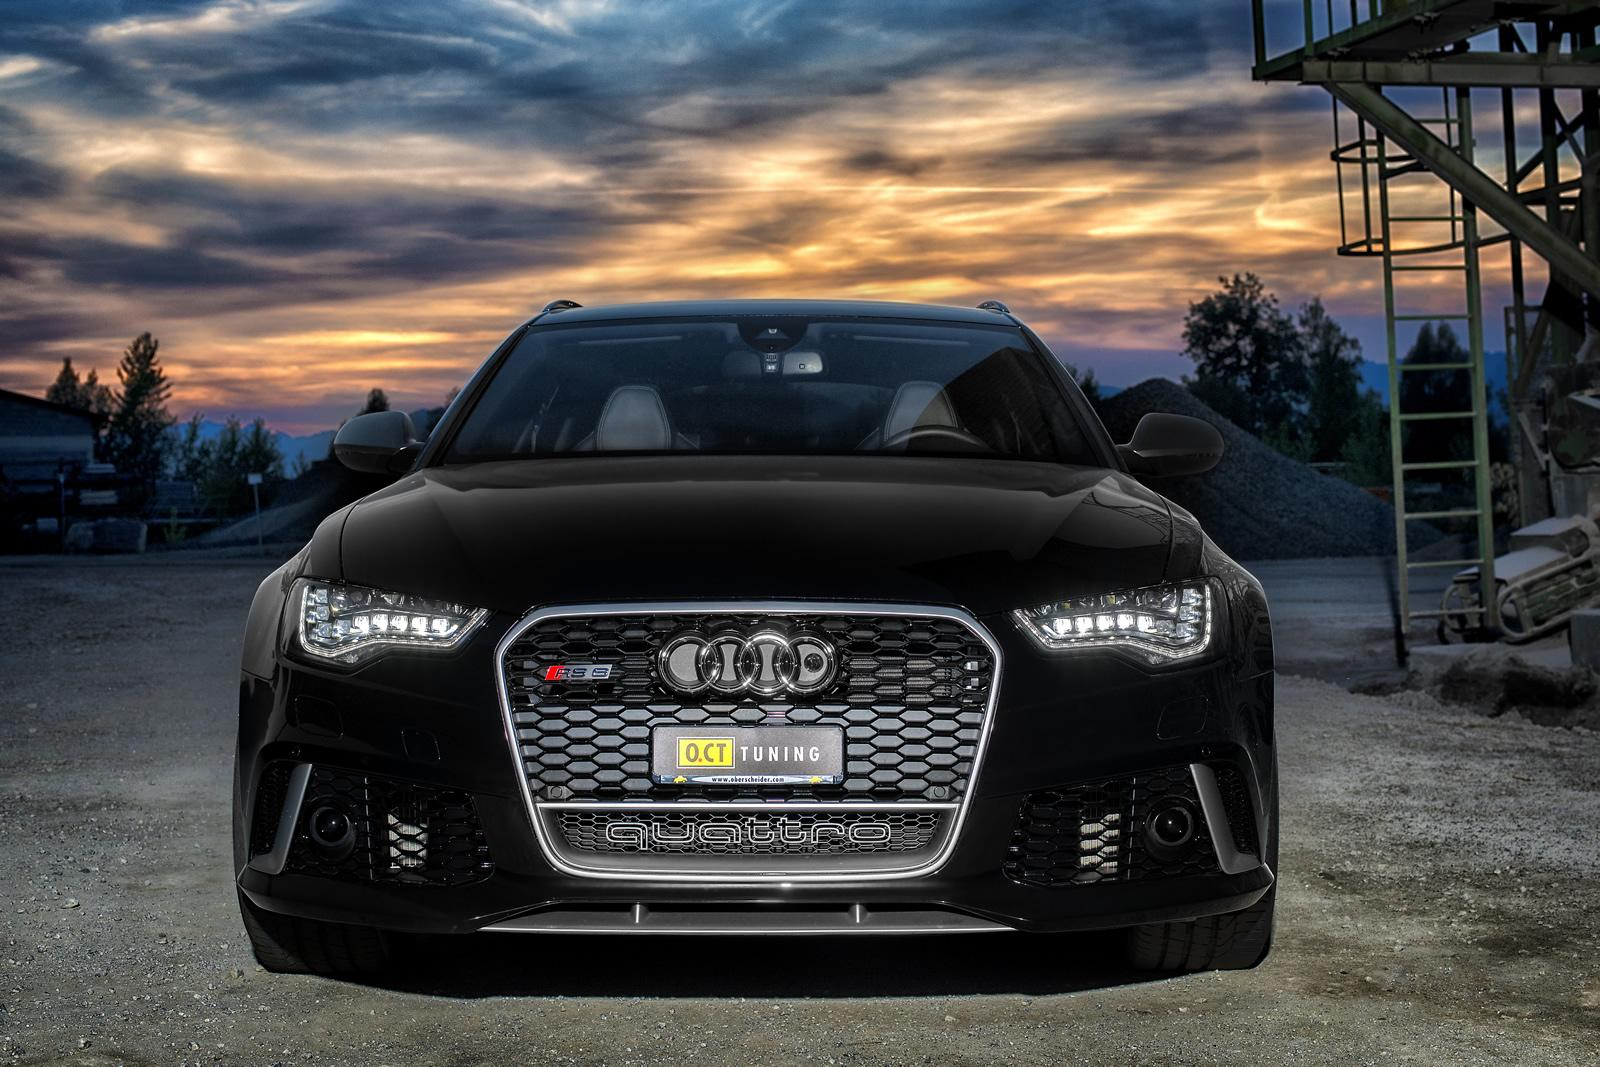 audi rs6 avant tuning rs tuned ct oct hp quattro official cars autoevolution front exhaust 670hp 880nm ammo acceleration gives